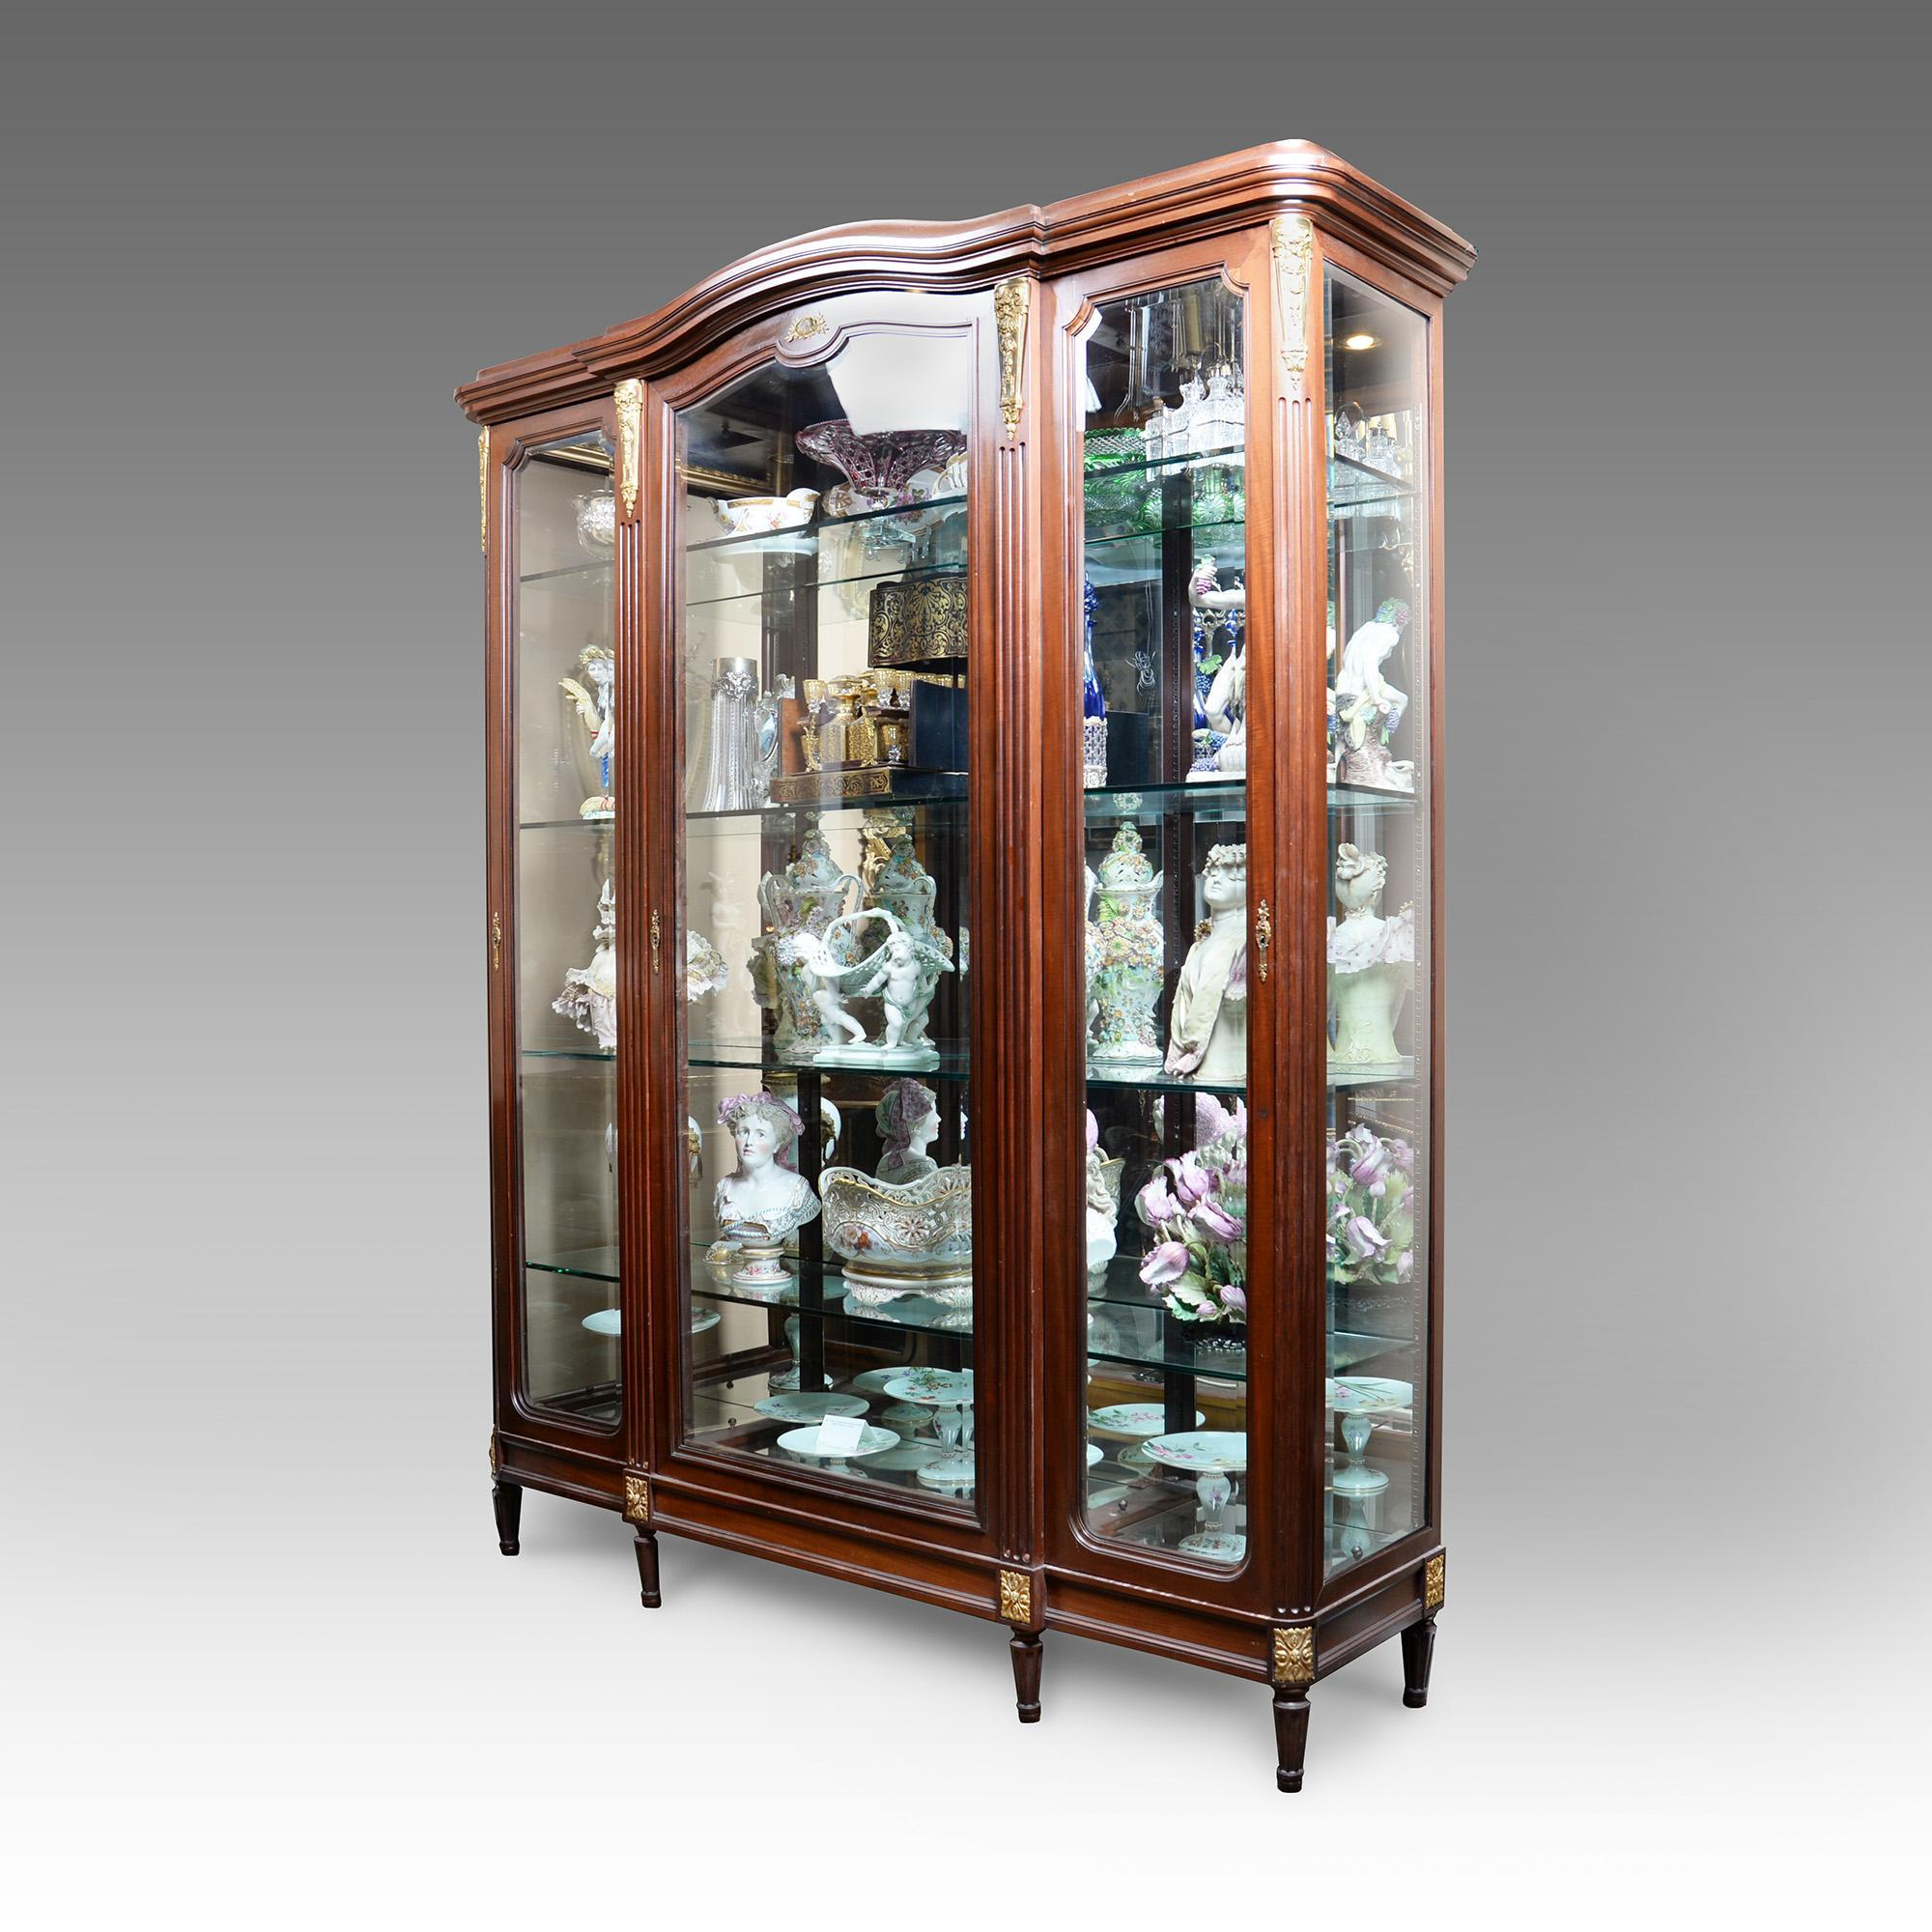 Early 20th C. French Louis XVI Kingwood Bibliothèque Vitrine Cabinet Mounted In Ormolu